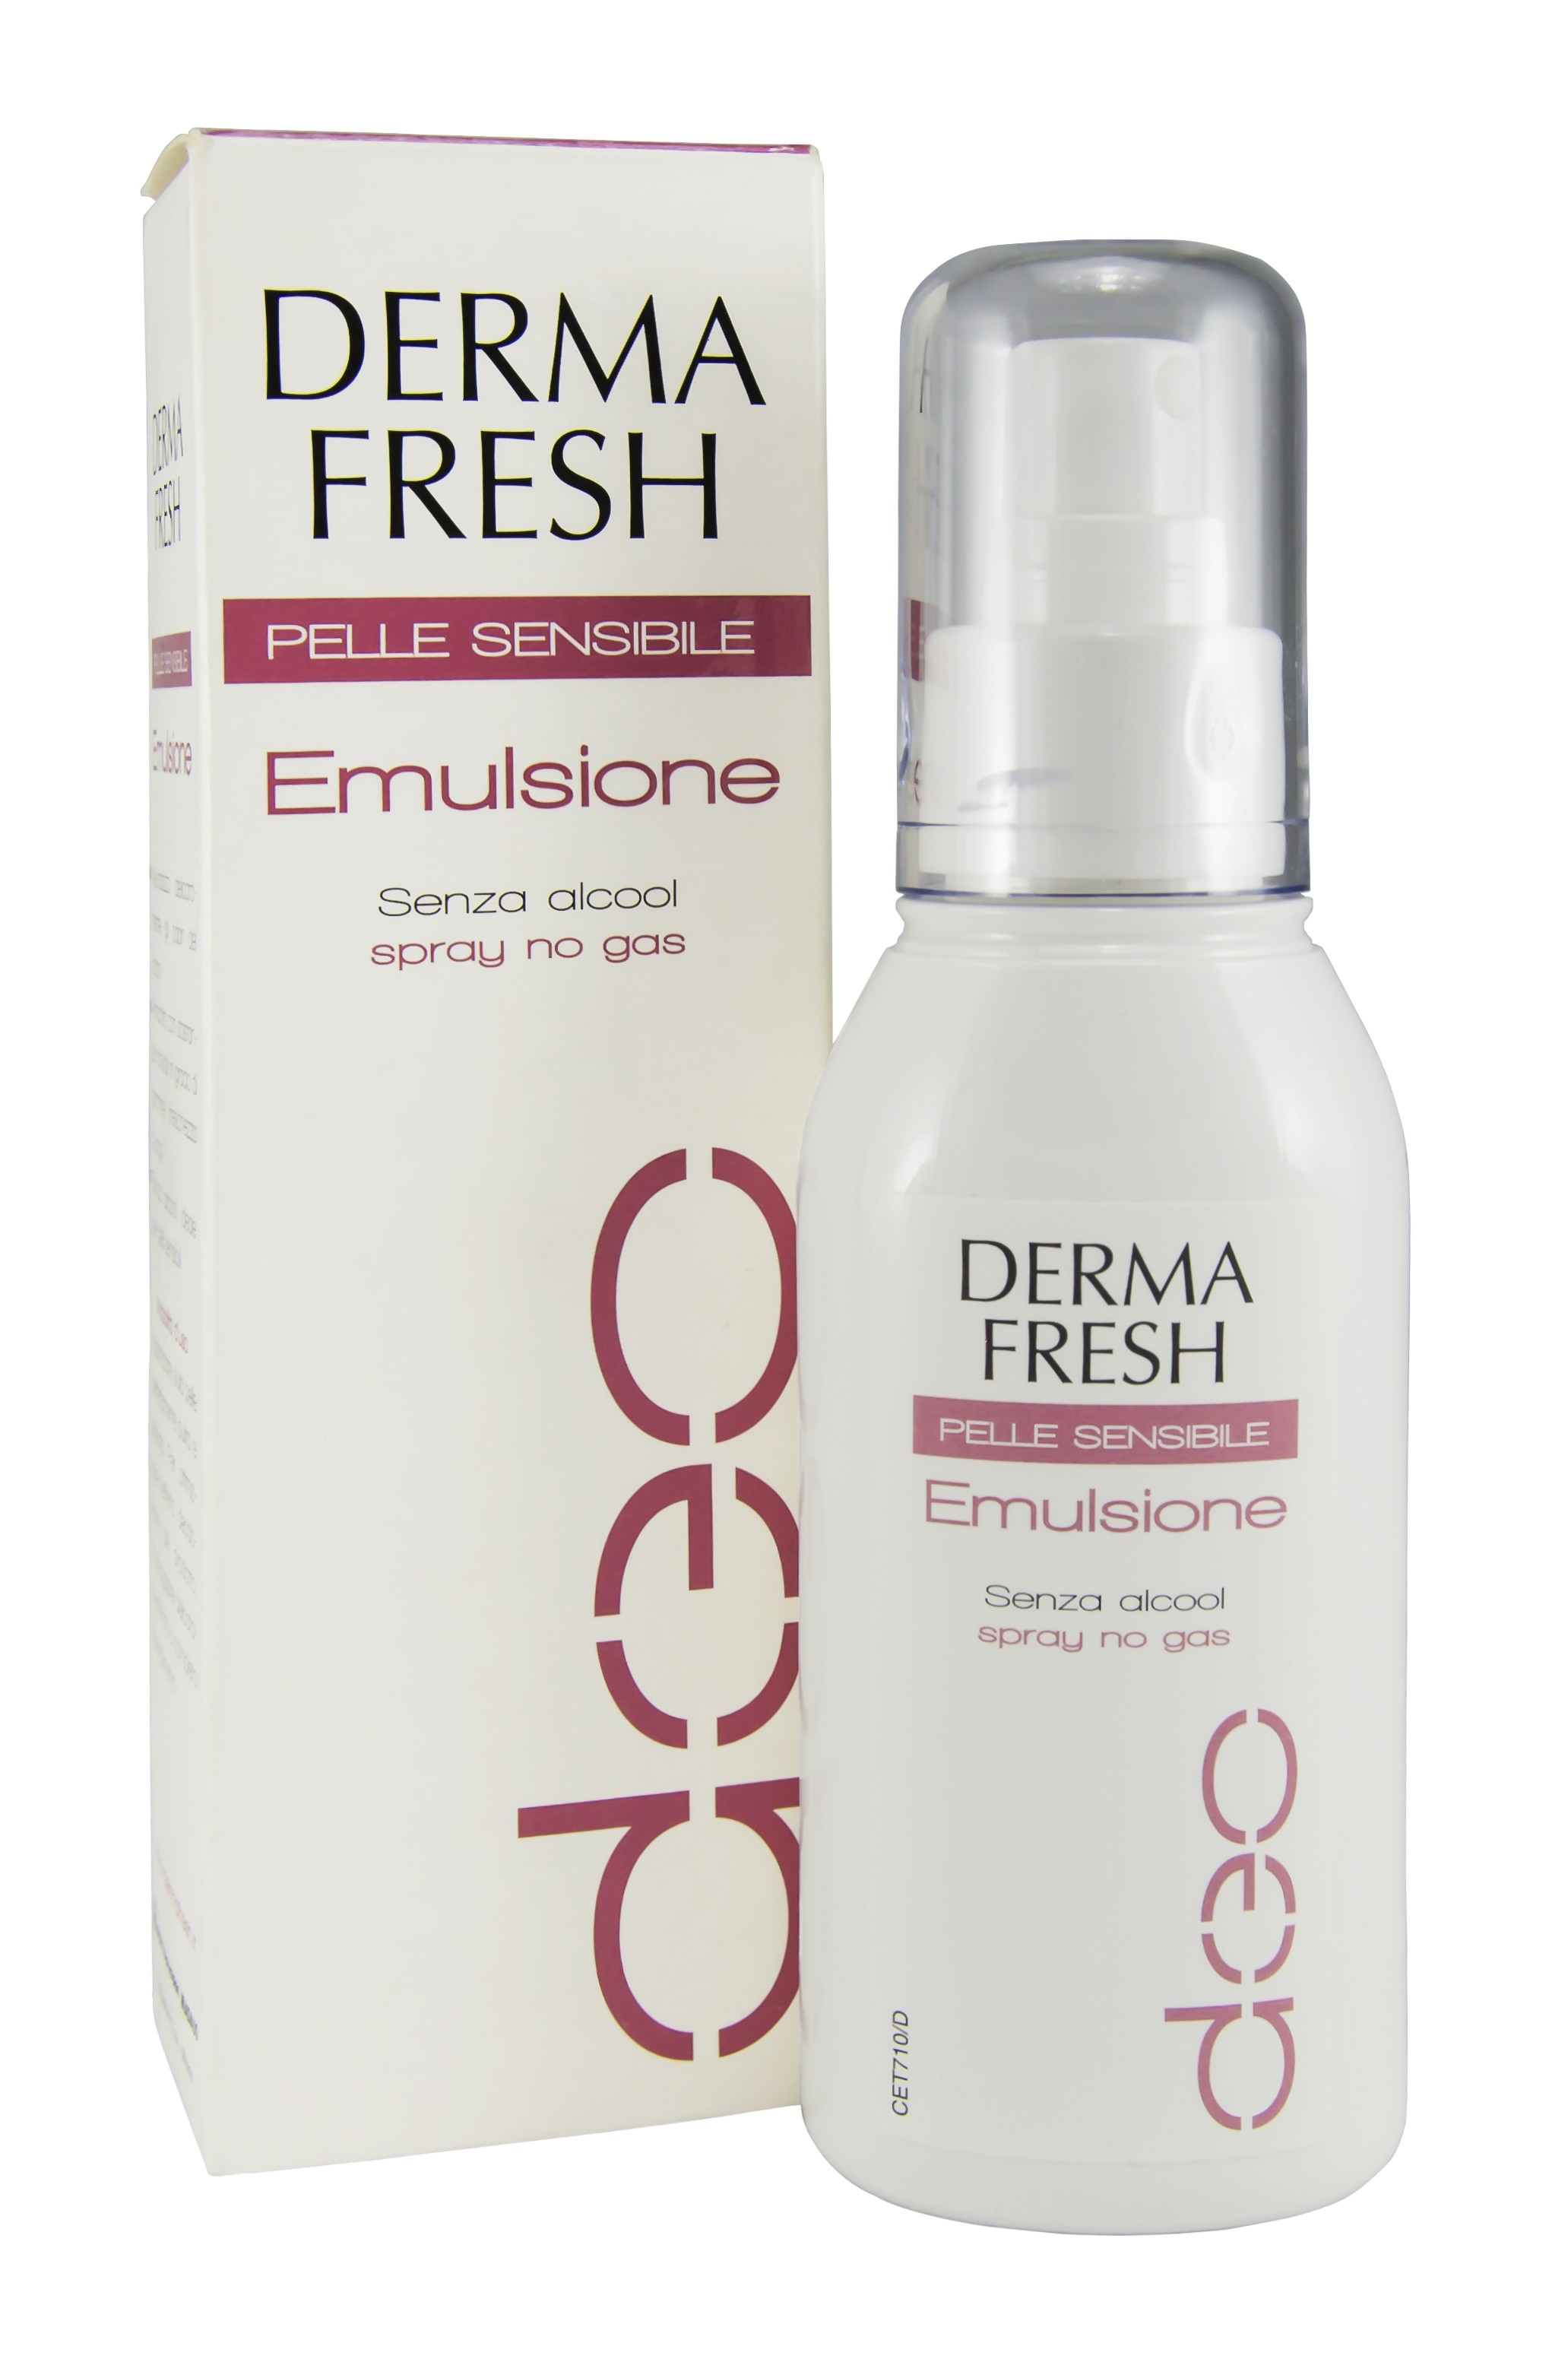 dermafresh-emulsione-deodorante-pelle-sensibile-spray-75ml